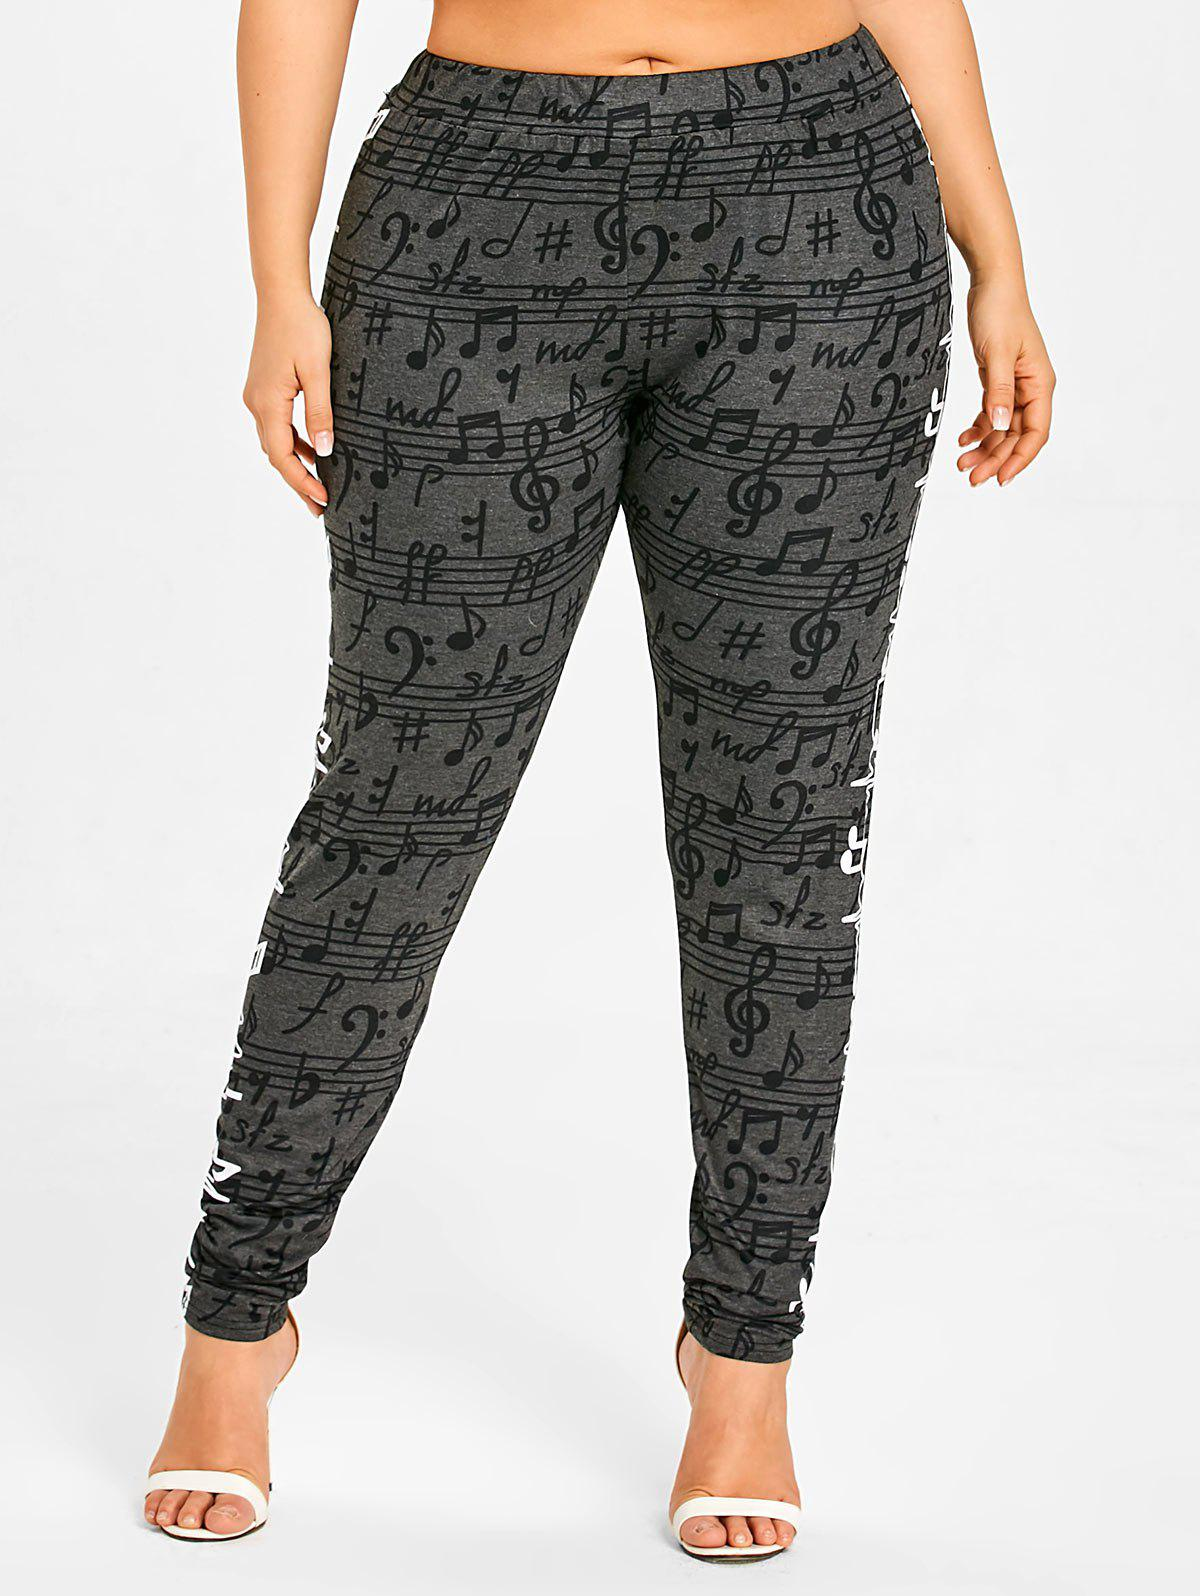 Store Musical Notes Allover Plus Size Casual Pants